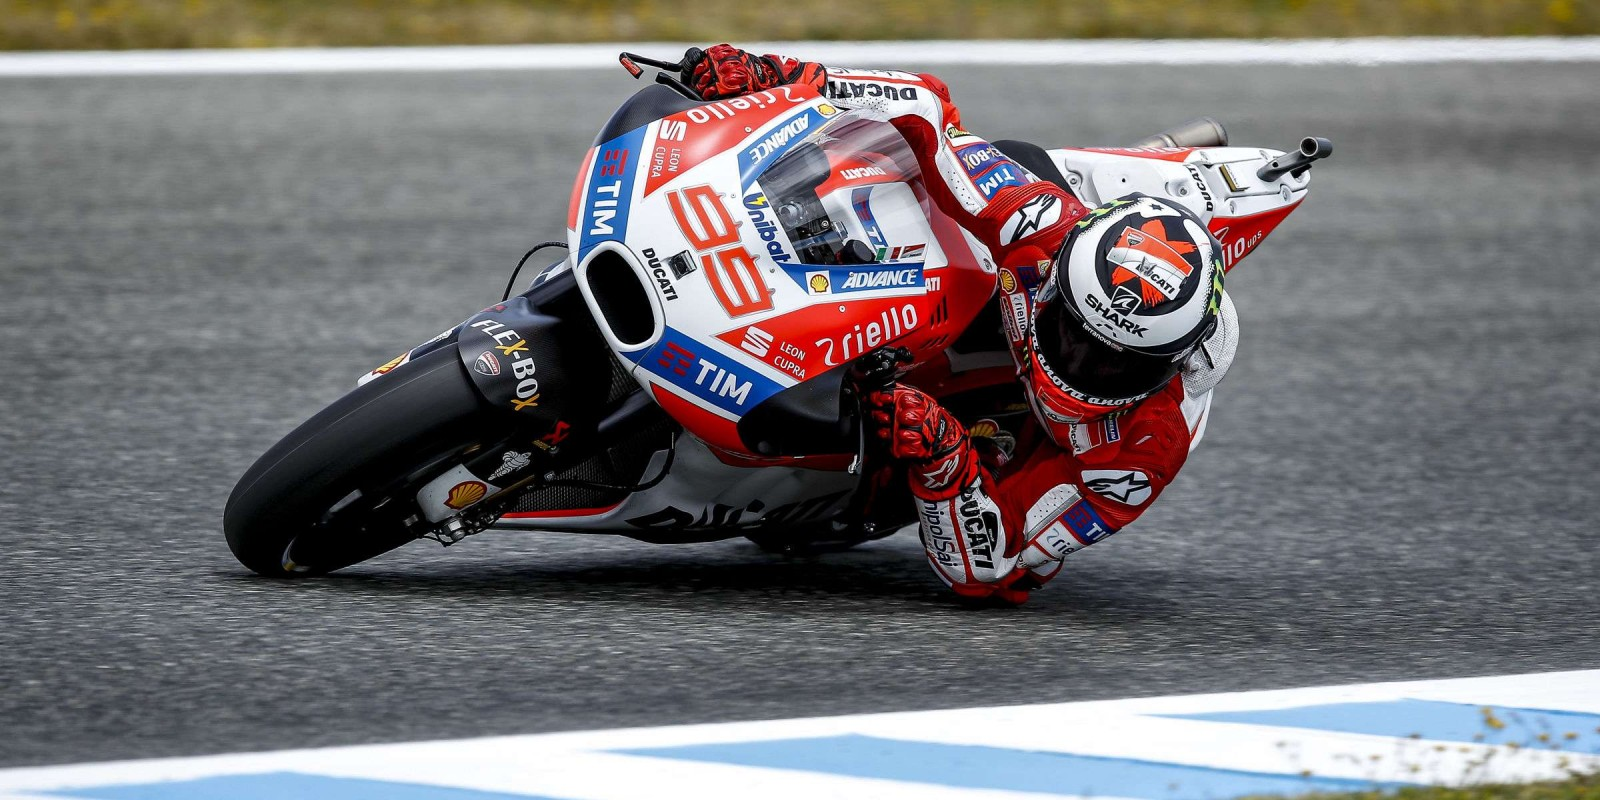 Jorge Lorenzo at the 2017 Grand Prix of Spain